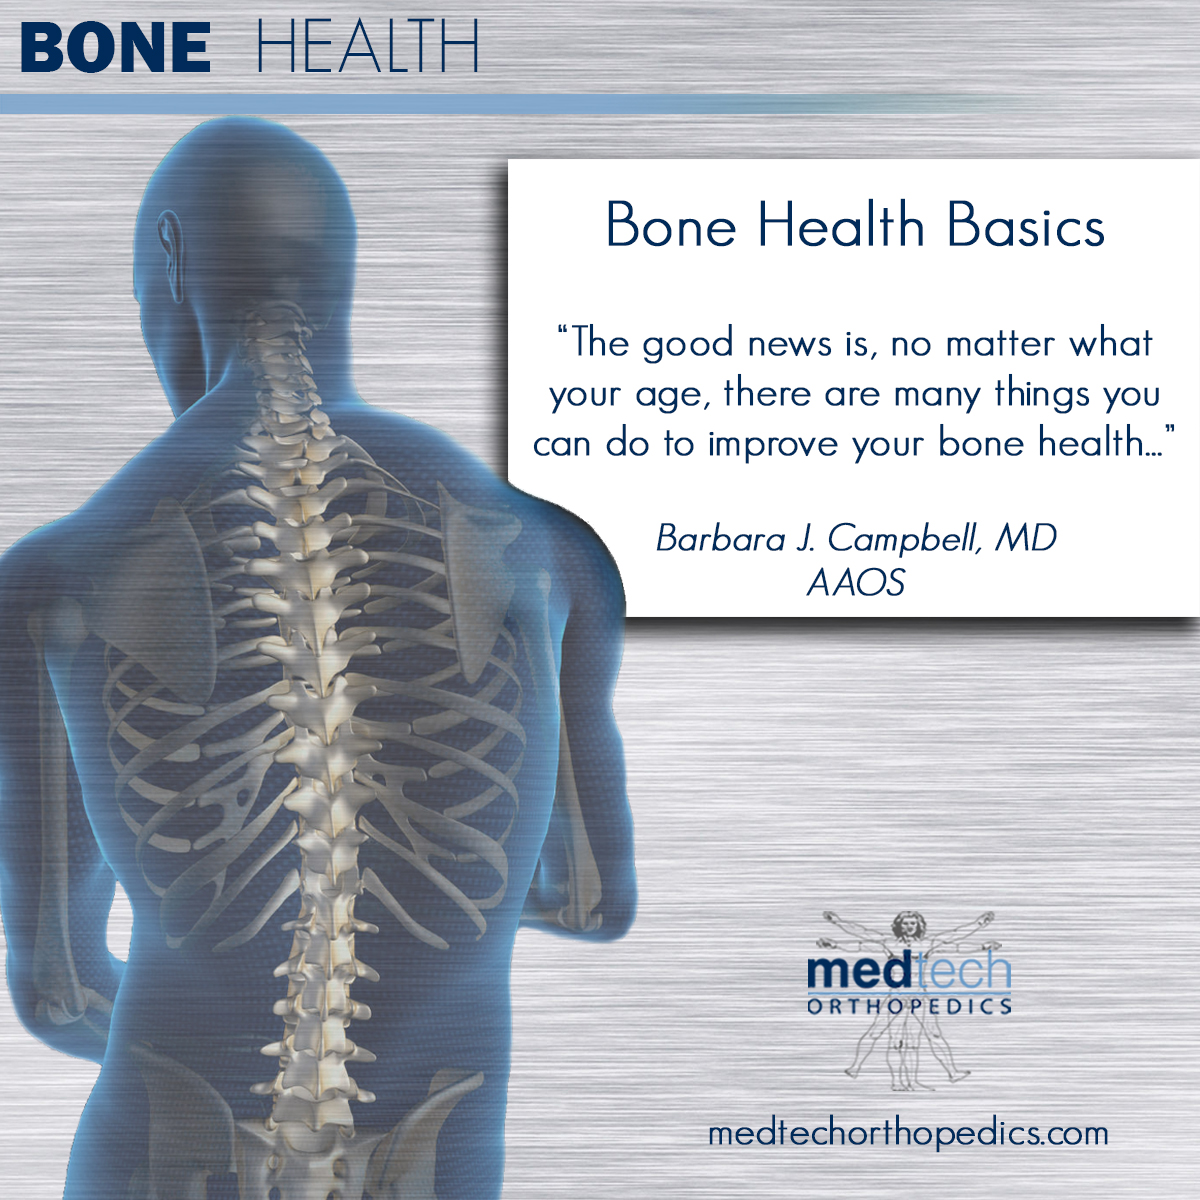 MedTech Bone Health